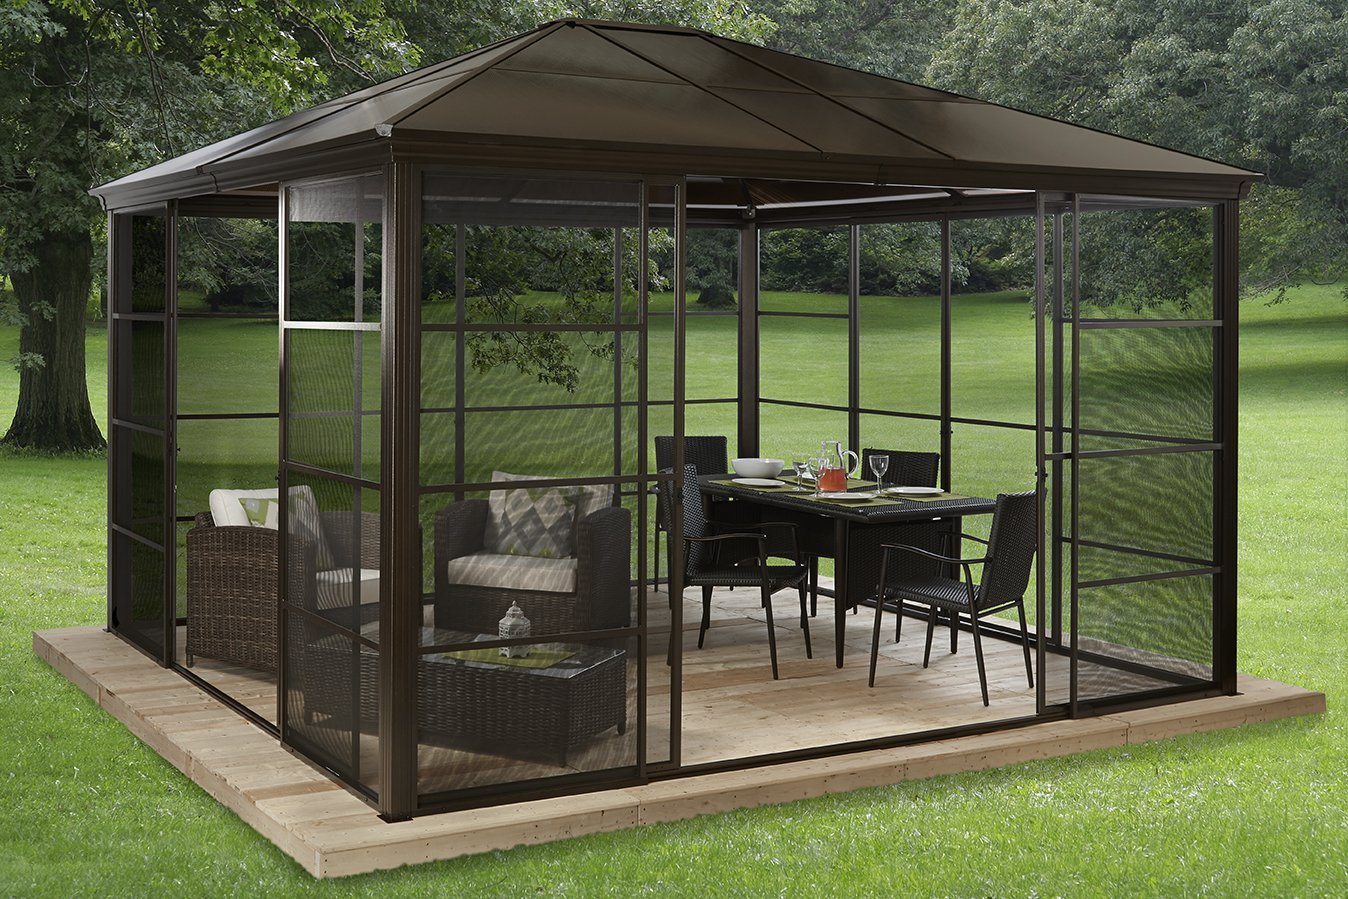 Hardtop gazebos best 2018 choices sorted by size - Pergola alu toile retractable ...